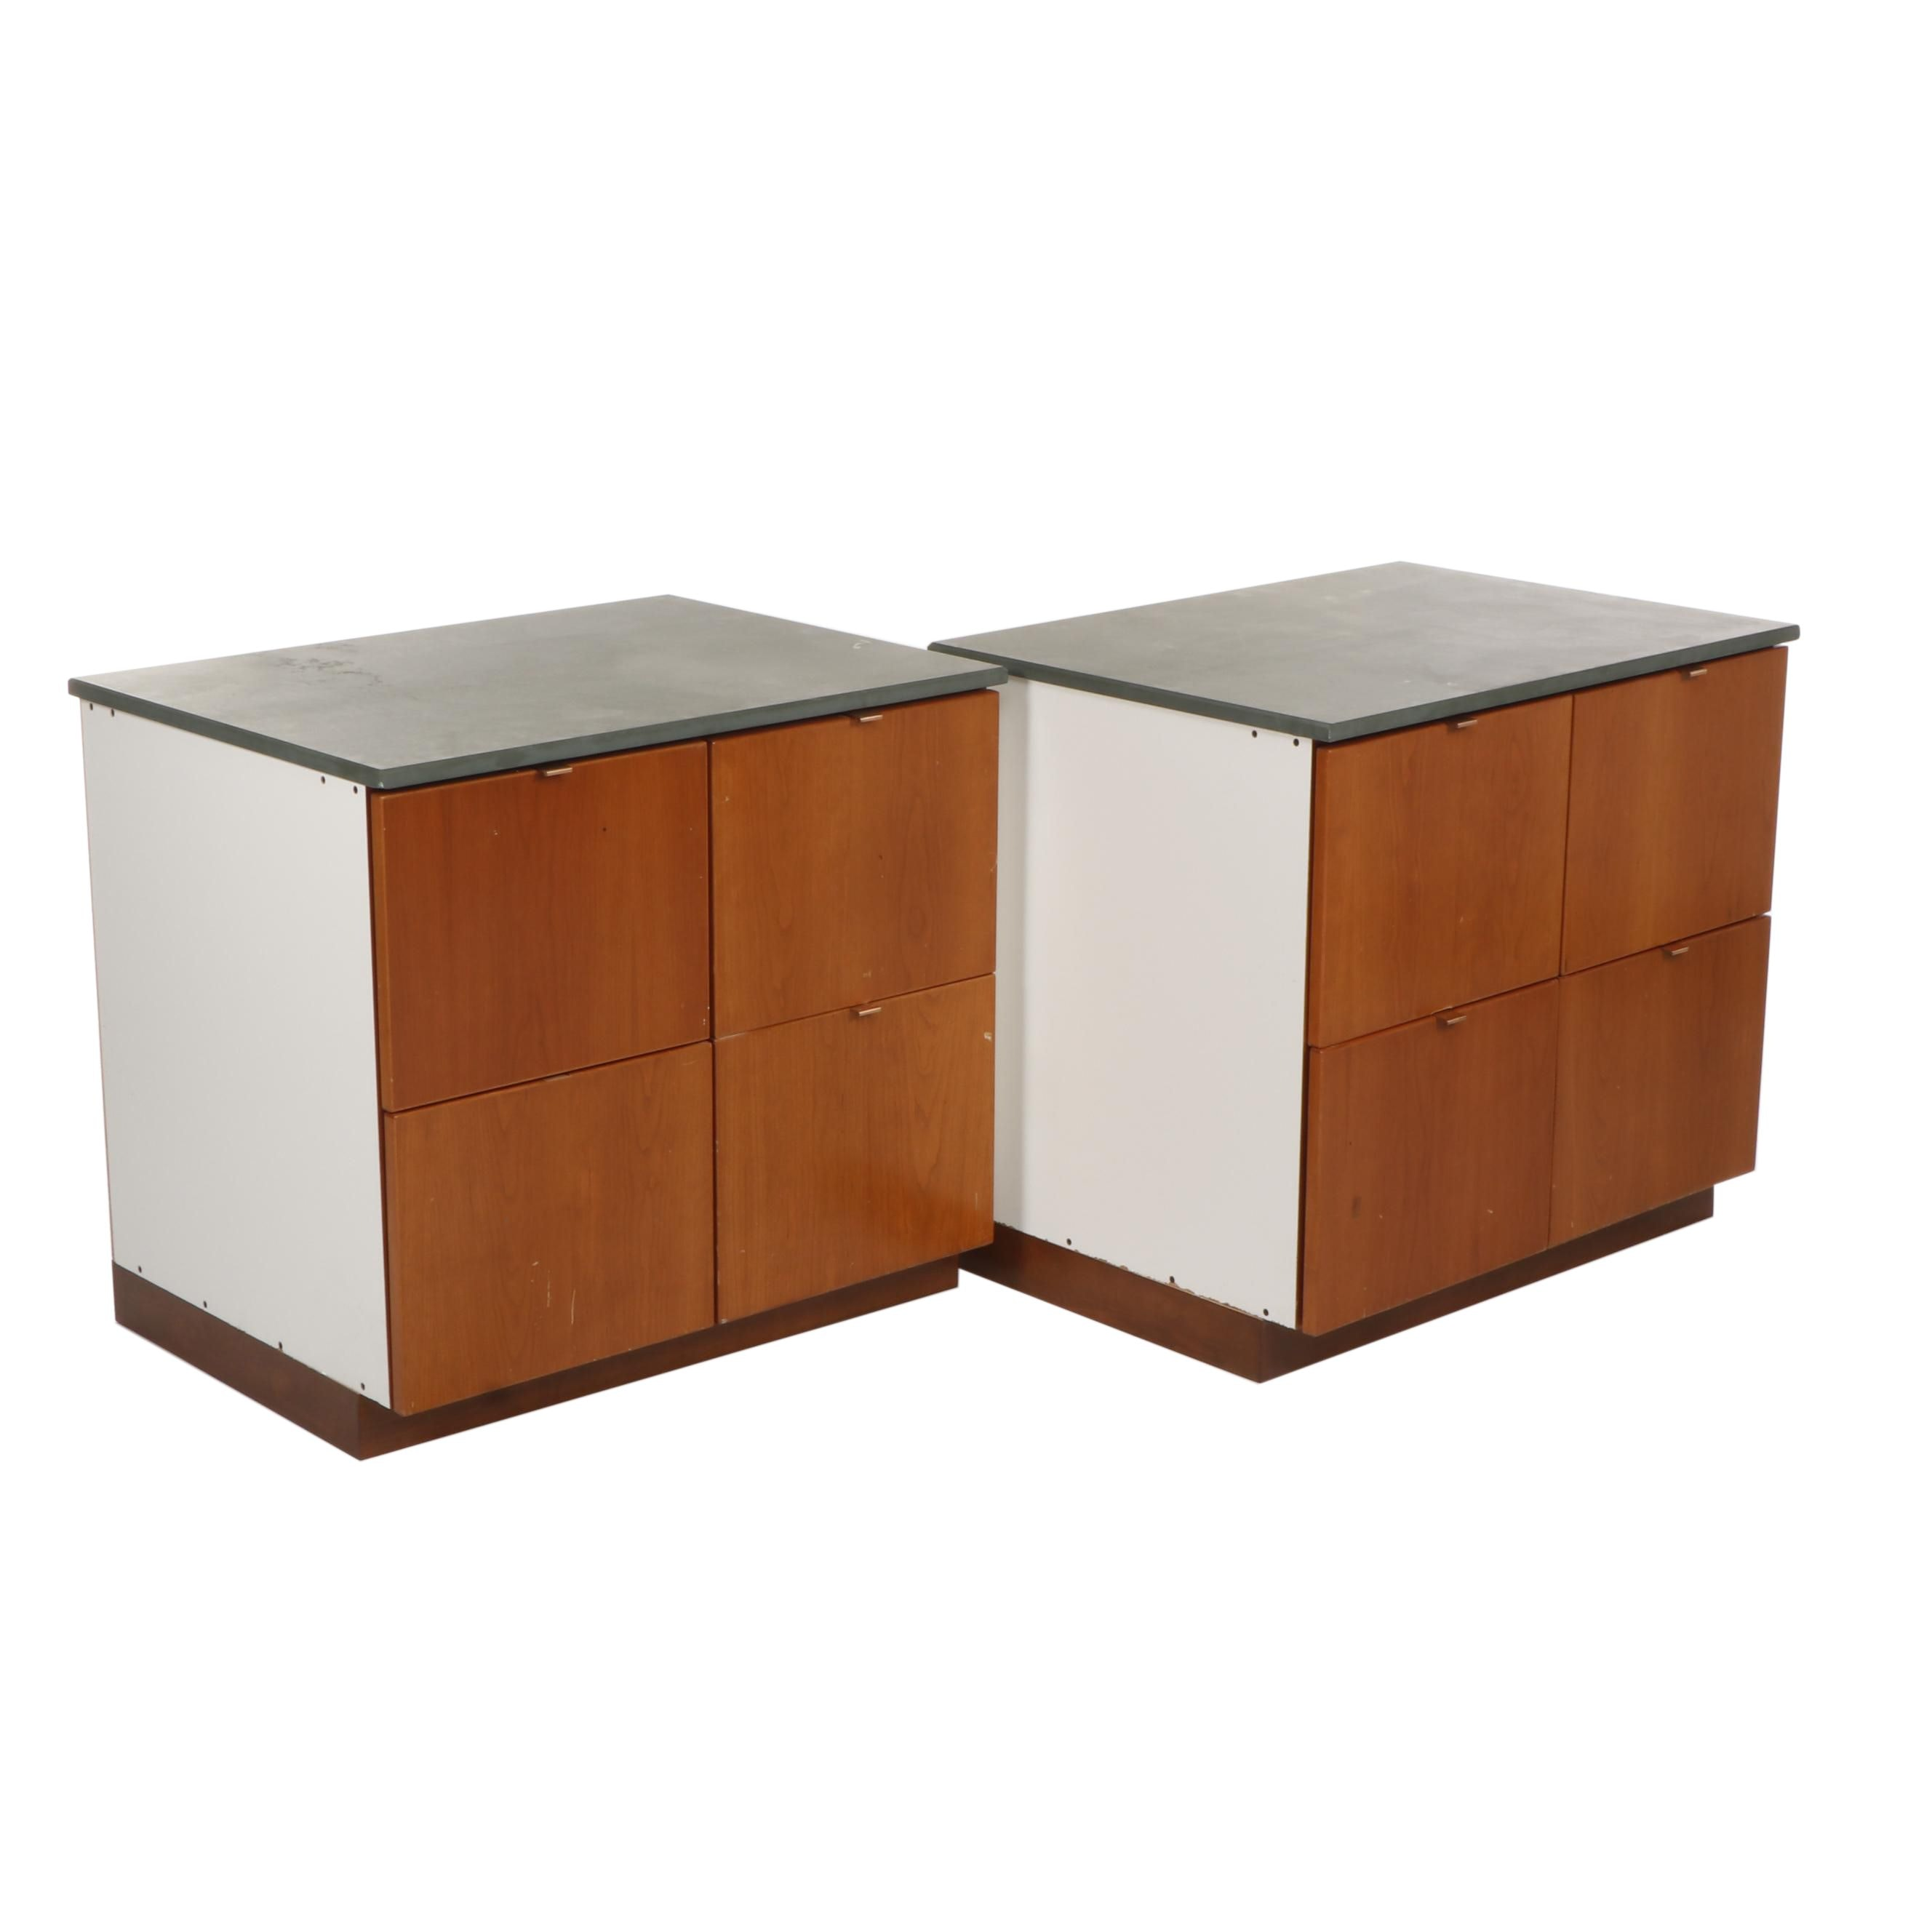 Pair of Contemporary Filing Cabinet Drawers with Stone Top